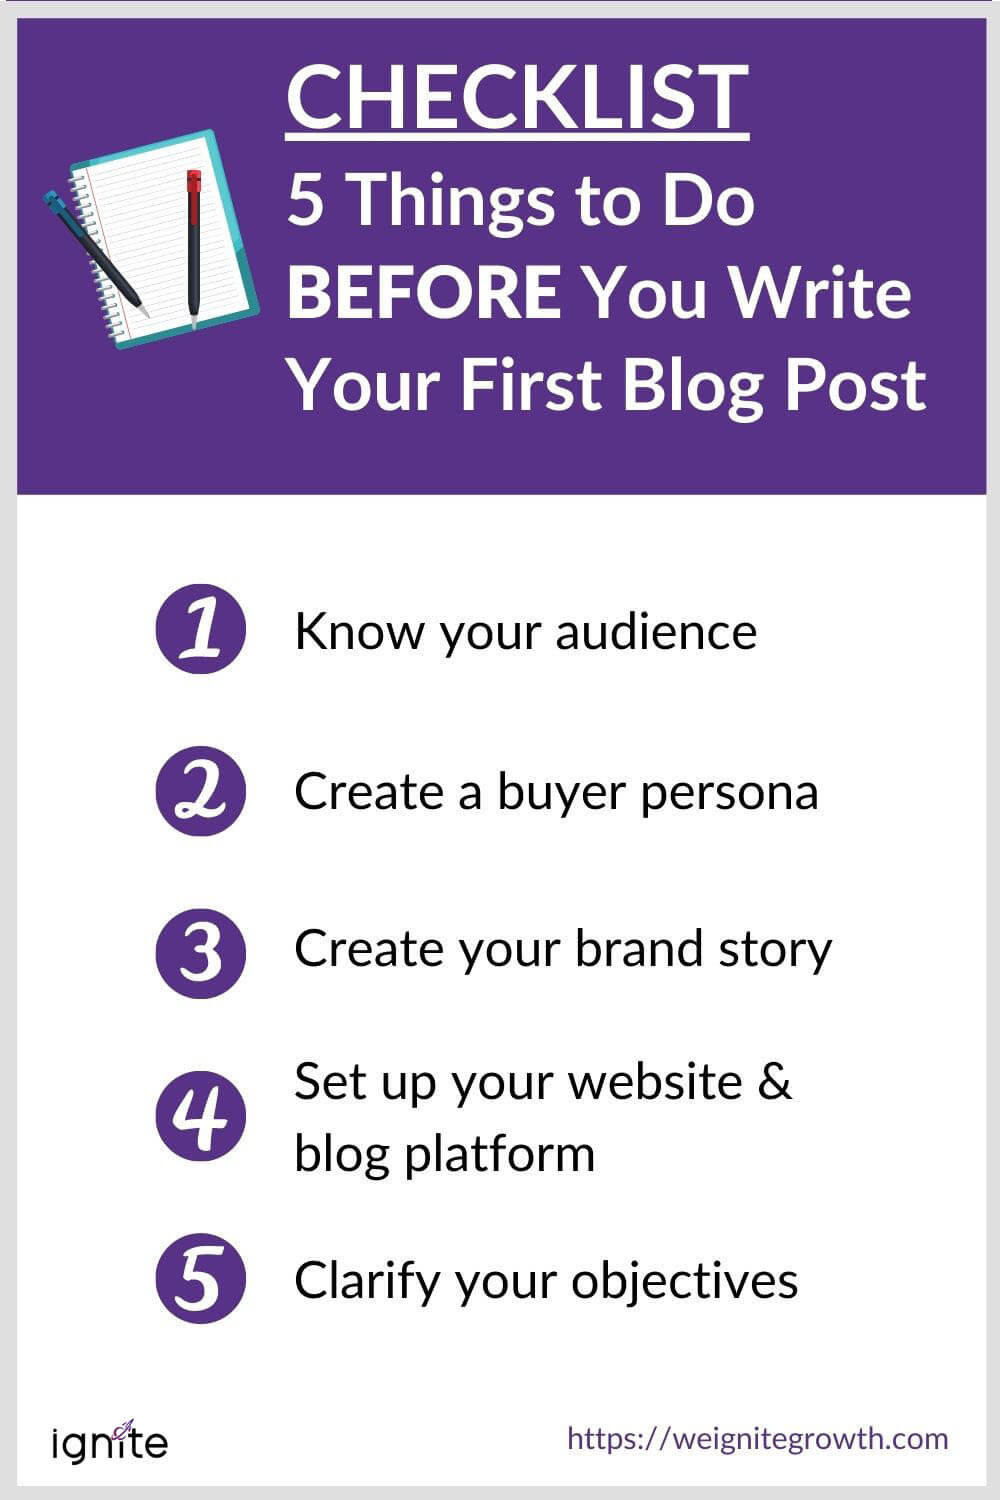 CHECKLIST 5 Things to Do BEFORE You Write Your First Blog Post